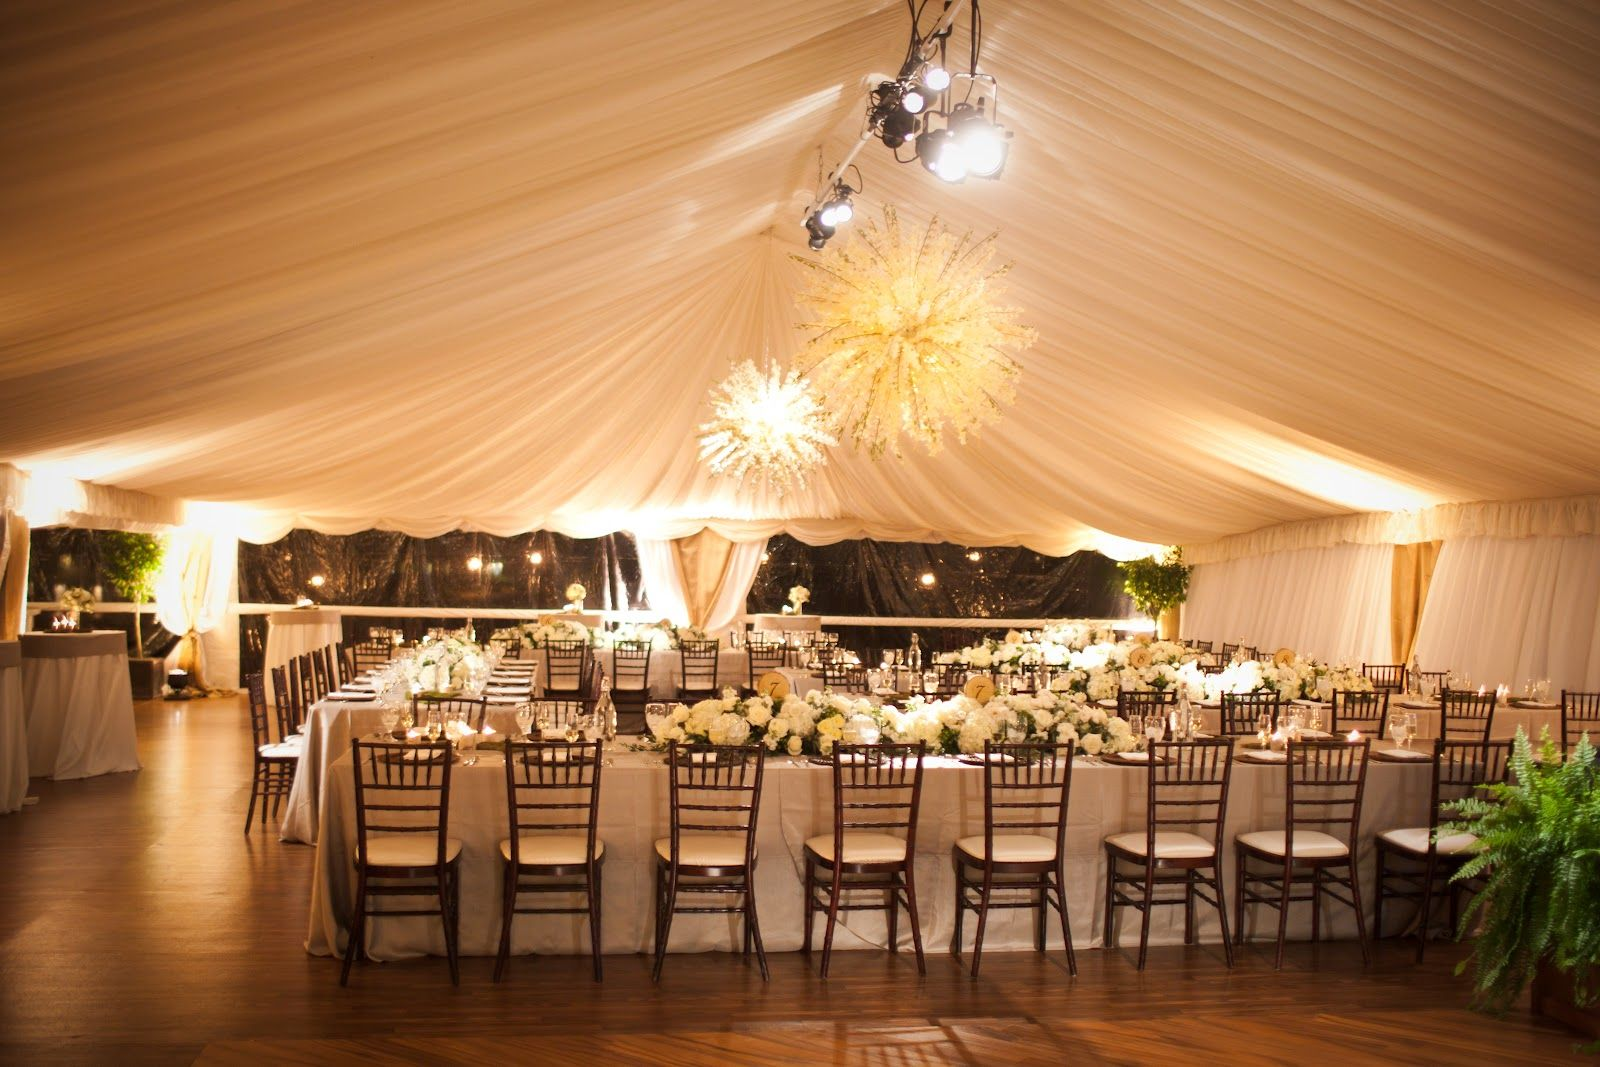 Wedding decoration designs  tent wedding decoration pictures  perfect The tent was from Traube